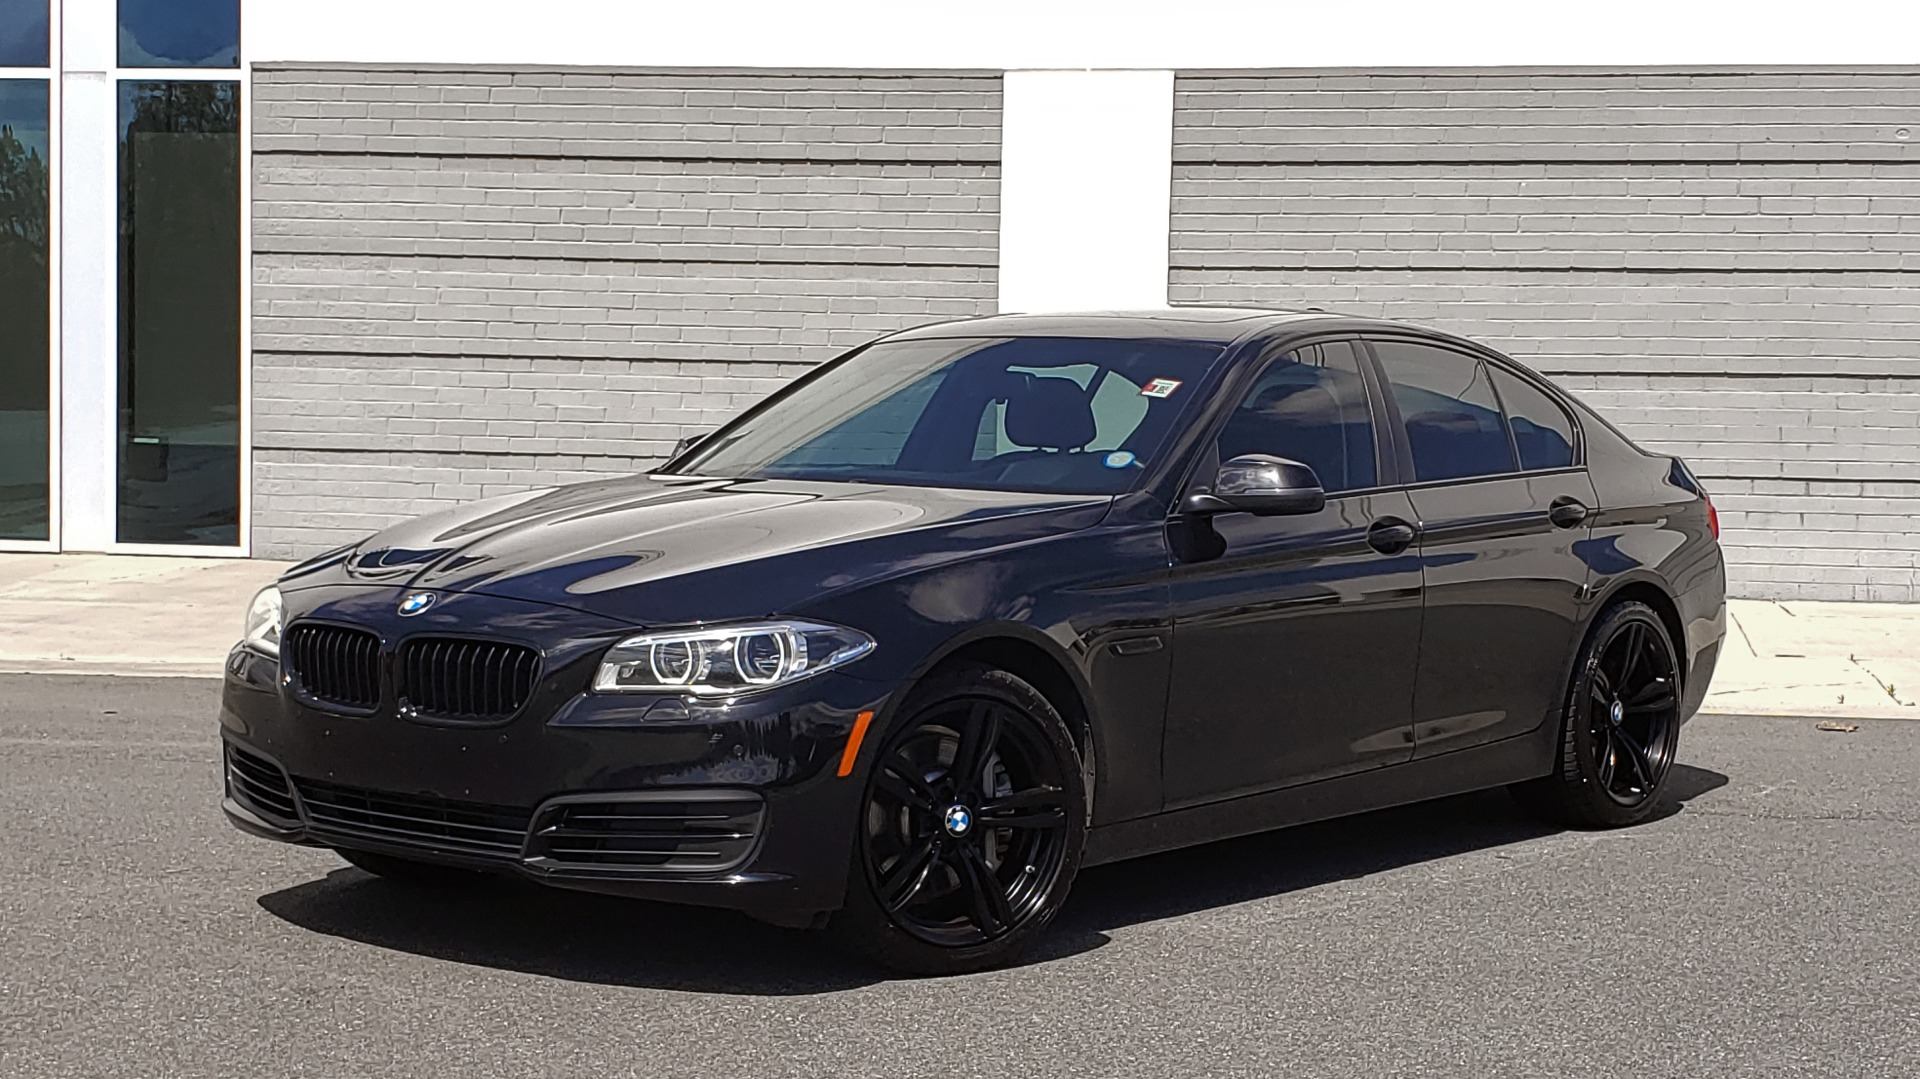 Used 2014 BMW 5 SERIES 535I PREMIUM / HUD / NAV / HTD STS / SUNROOF / REARVIEW for sale $18,995 at Formula Imports in Charlotte NC 28227 1